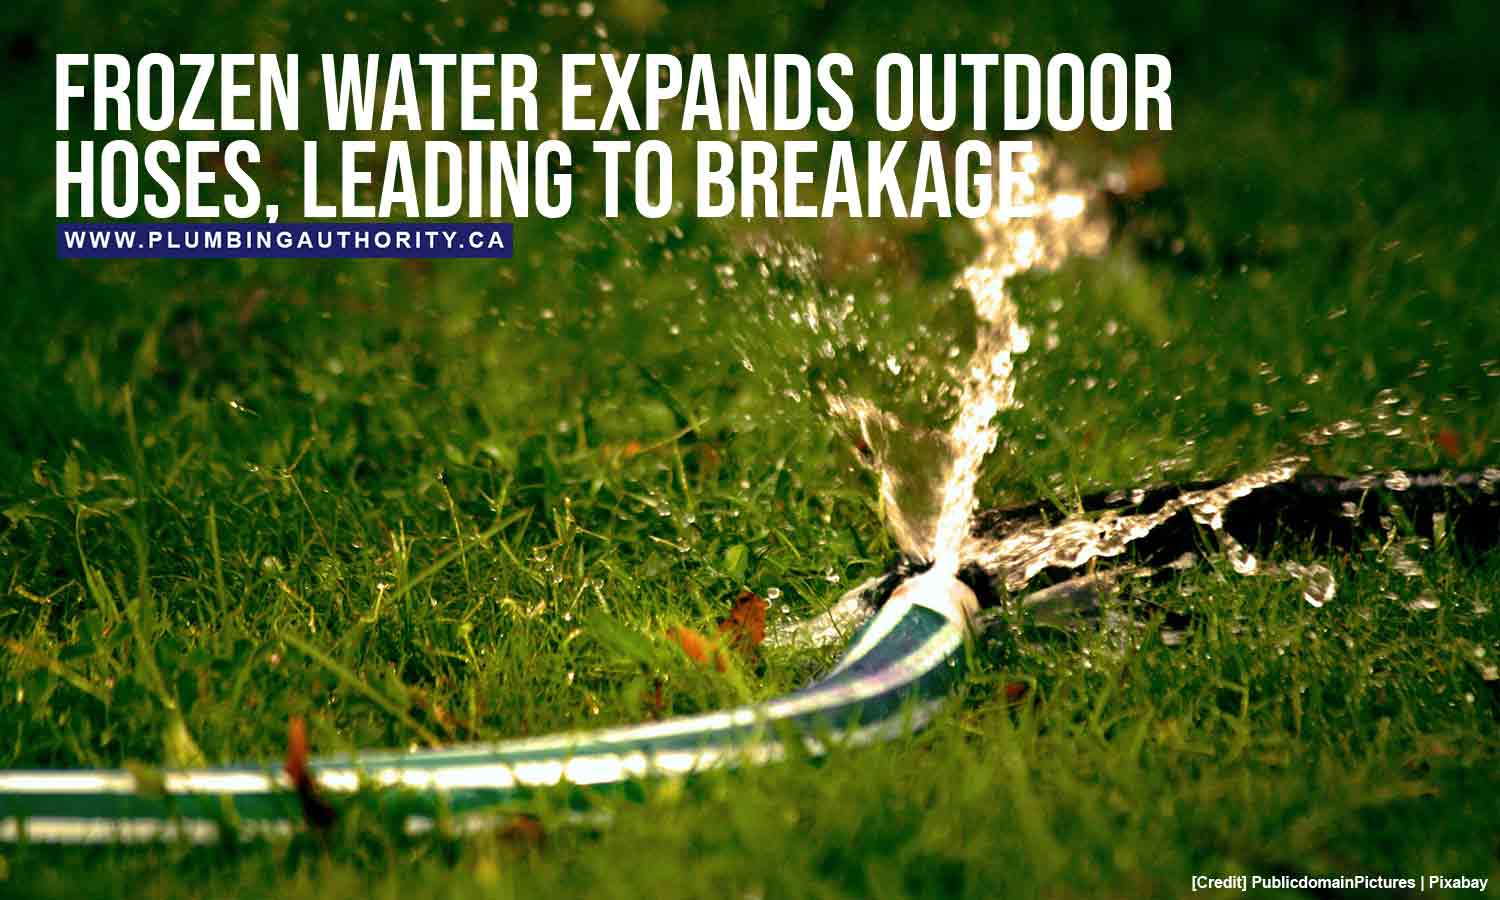 Frozen water expands outdoor hoses